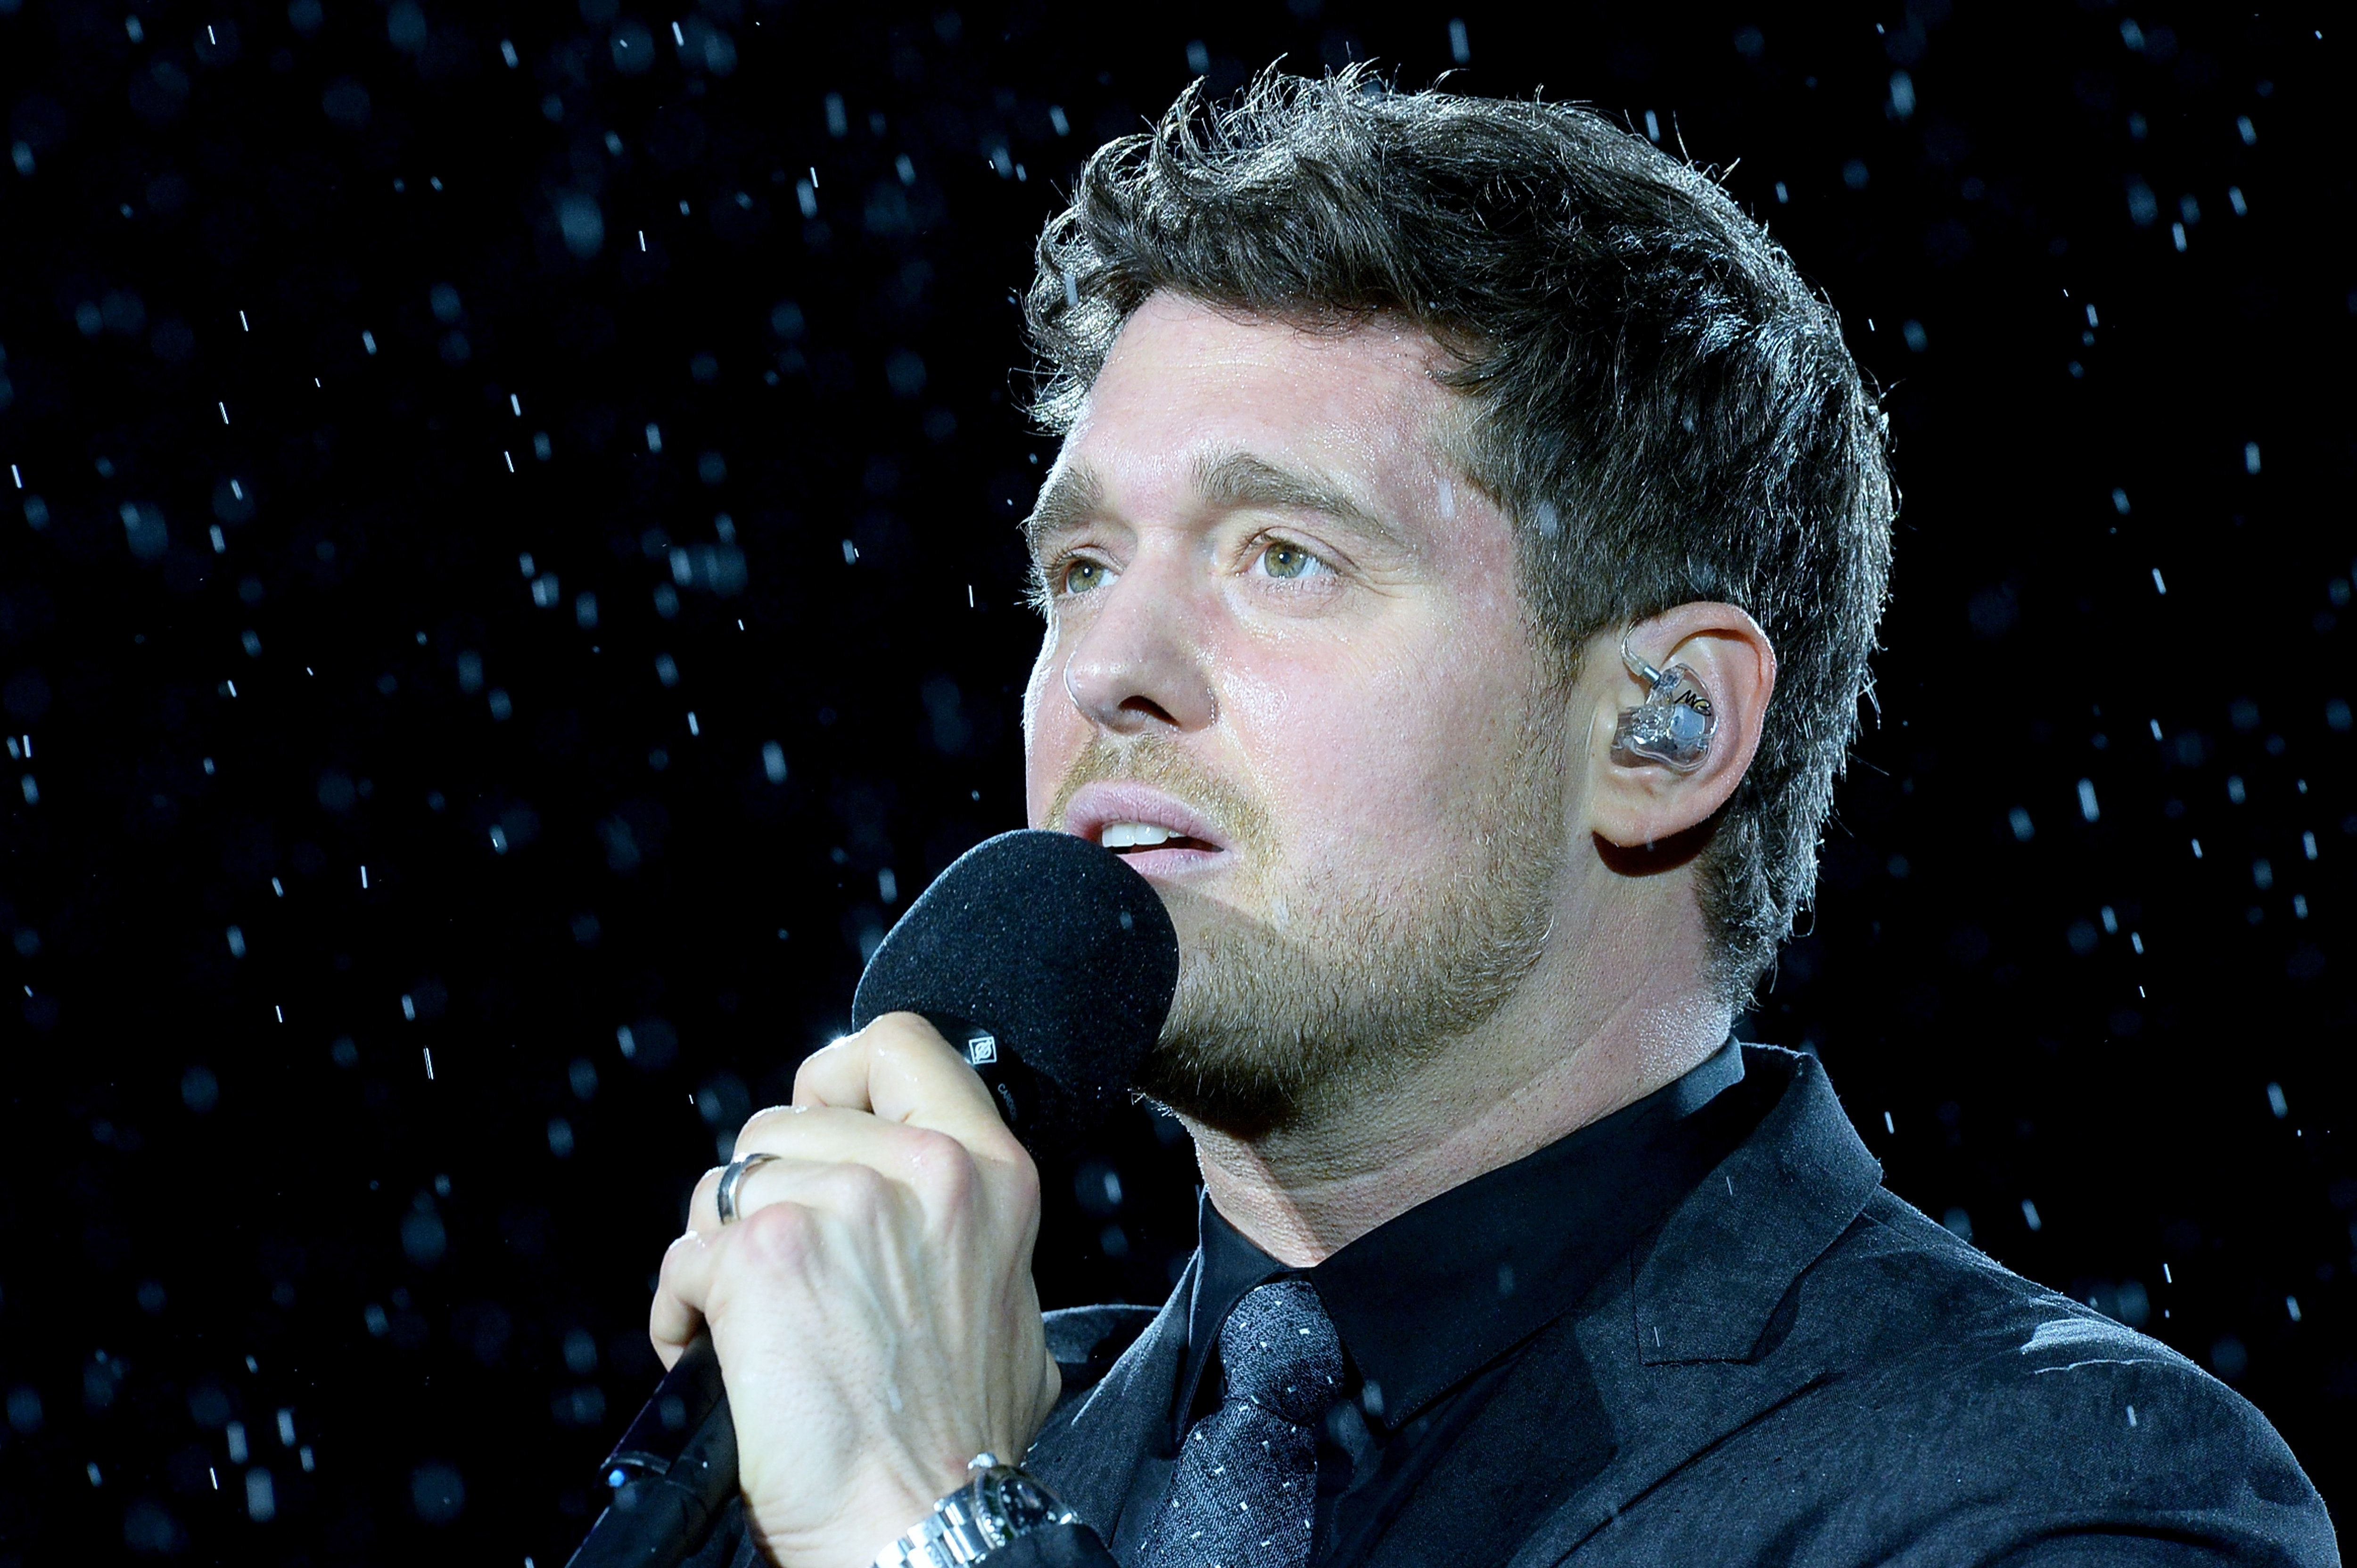 Michael Bublé Admits He 'Didn't Anticipate Returning To Music' After Son's Cancer